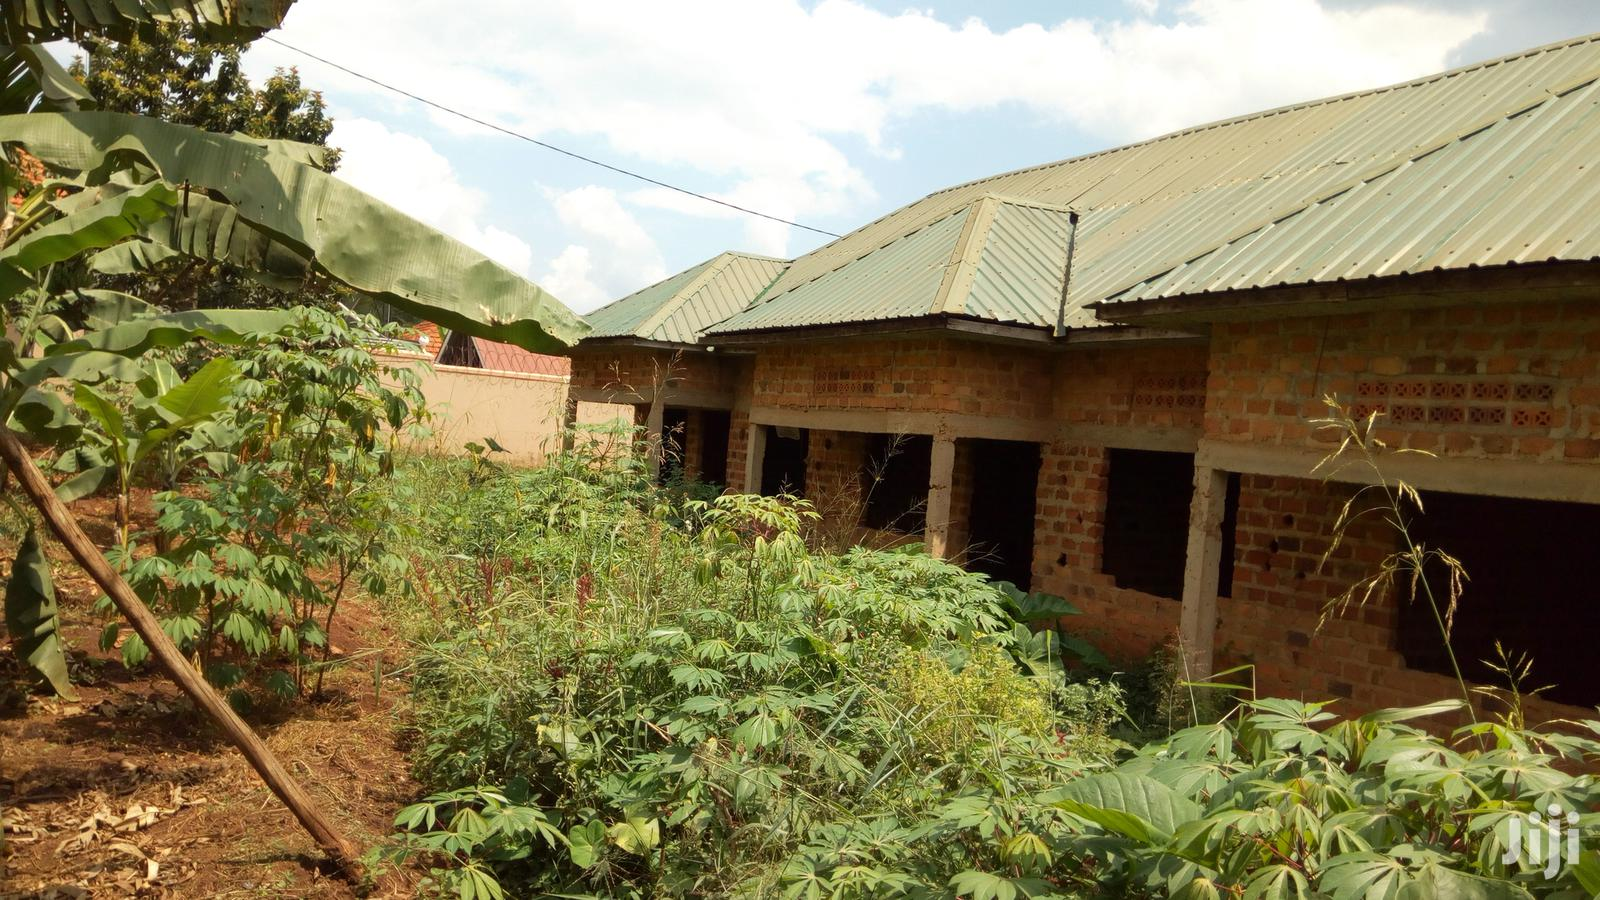 Archive: 3units of 2bedrooms on 13decimals Plot in Namugongo-Misindye at 85m